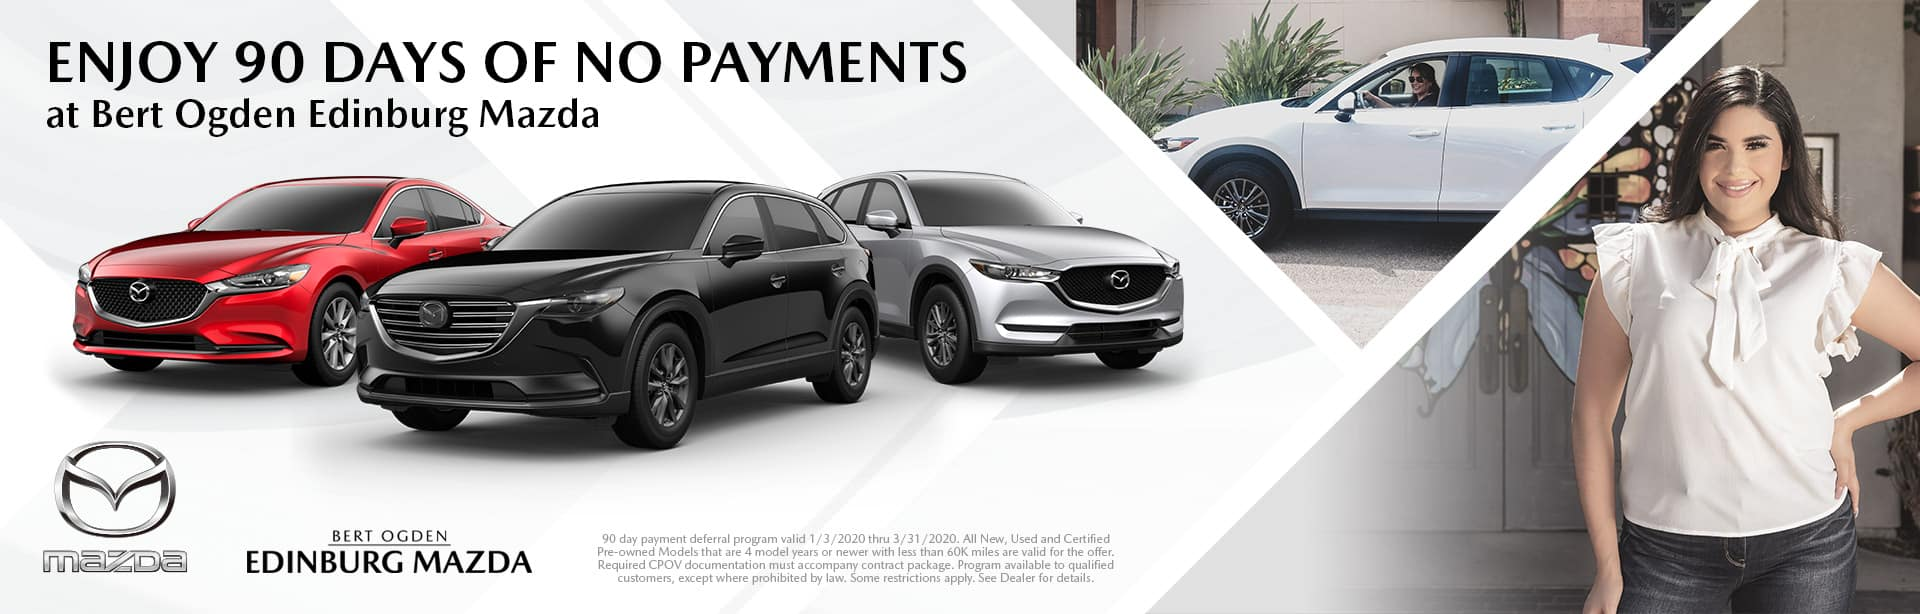 90 Days of No Payments at Bert Ogden Mazda in Edinburg, TX